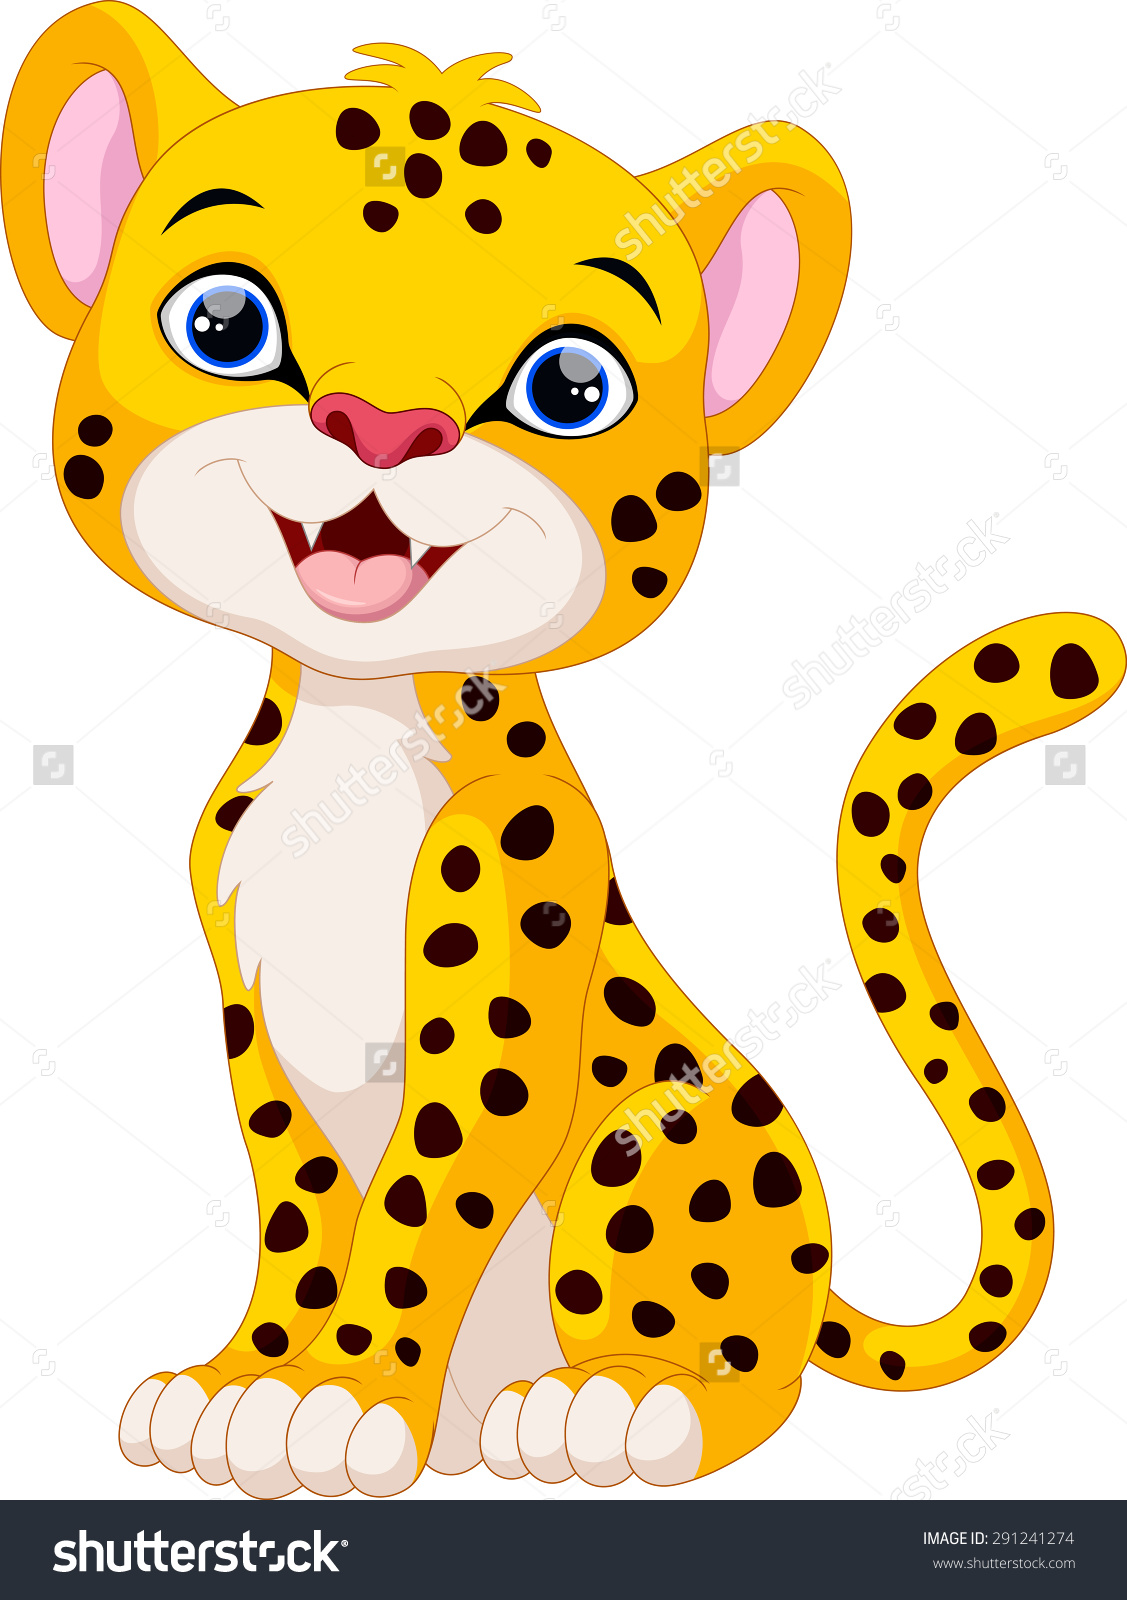 Baby Cheetah Clipart | Free download best Baby Cheetah Clipart on ... for Clipart Leopard Cute  83fiz